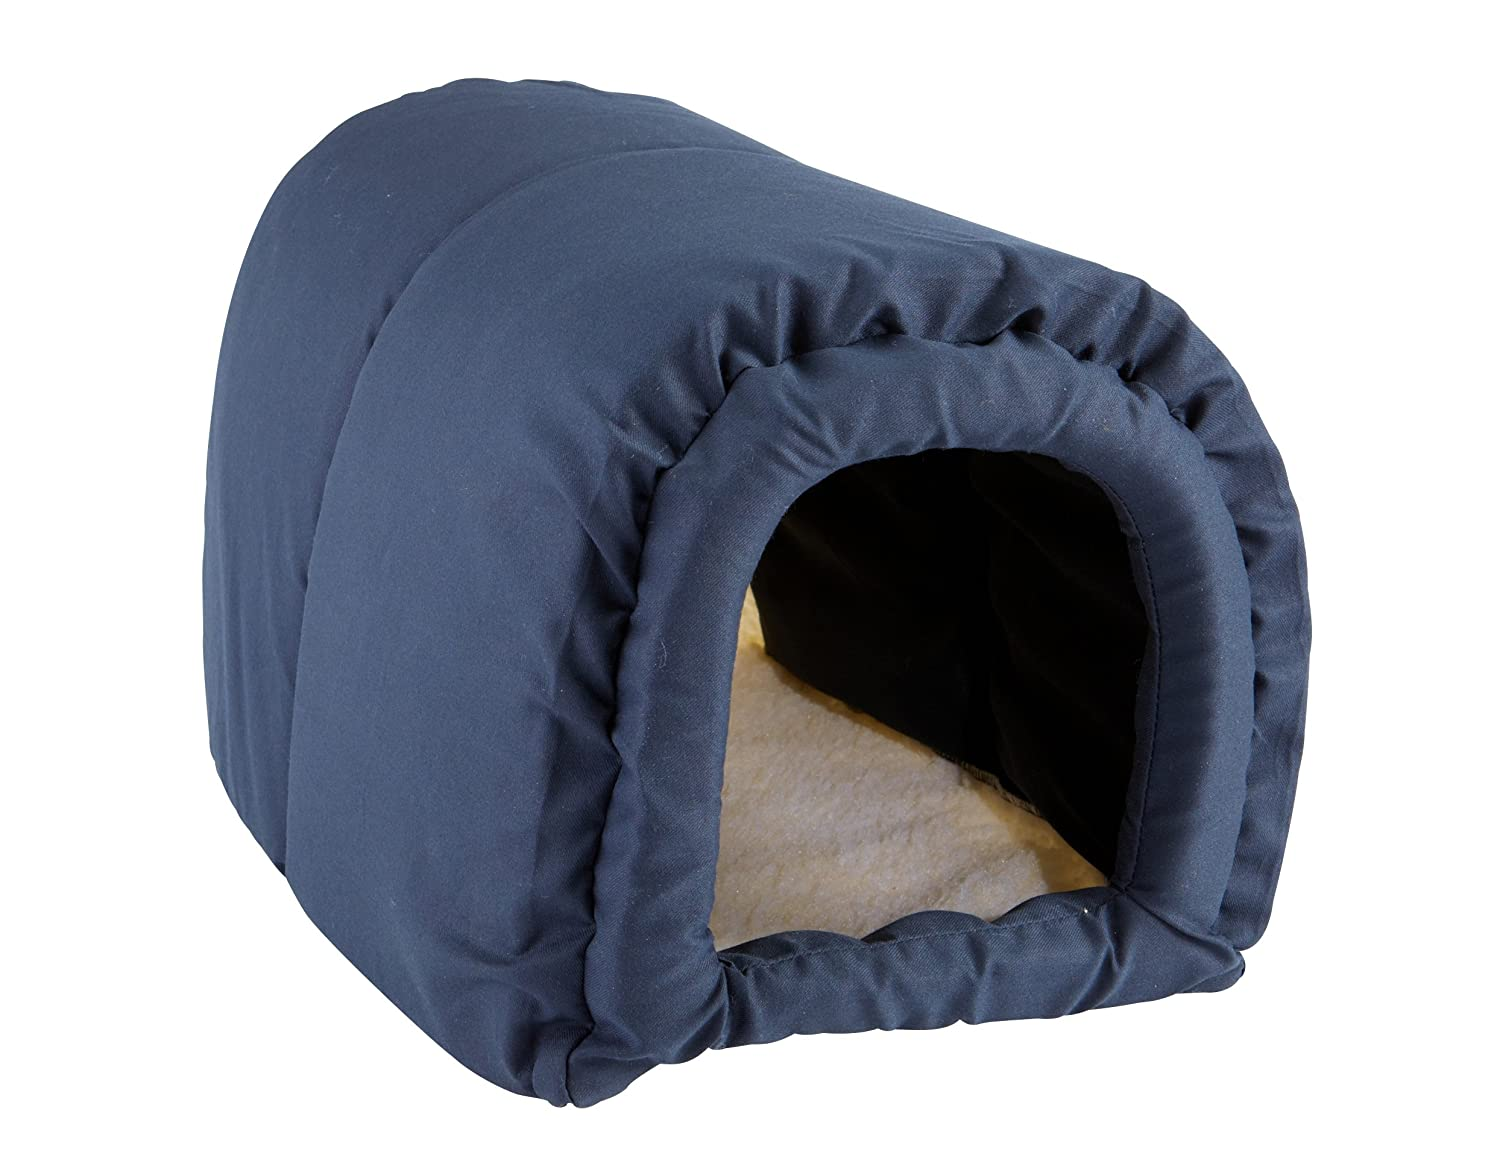 Navy Great State Pet Kitty Cave Cat Bed, Navy